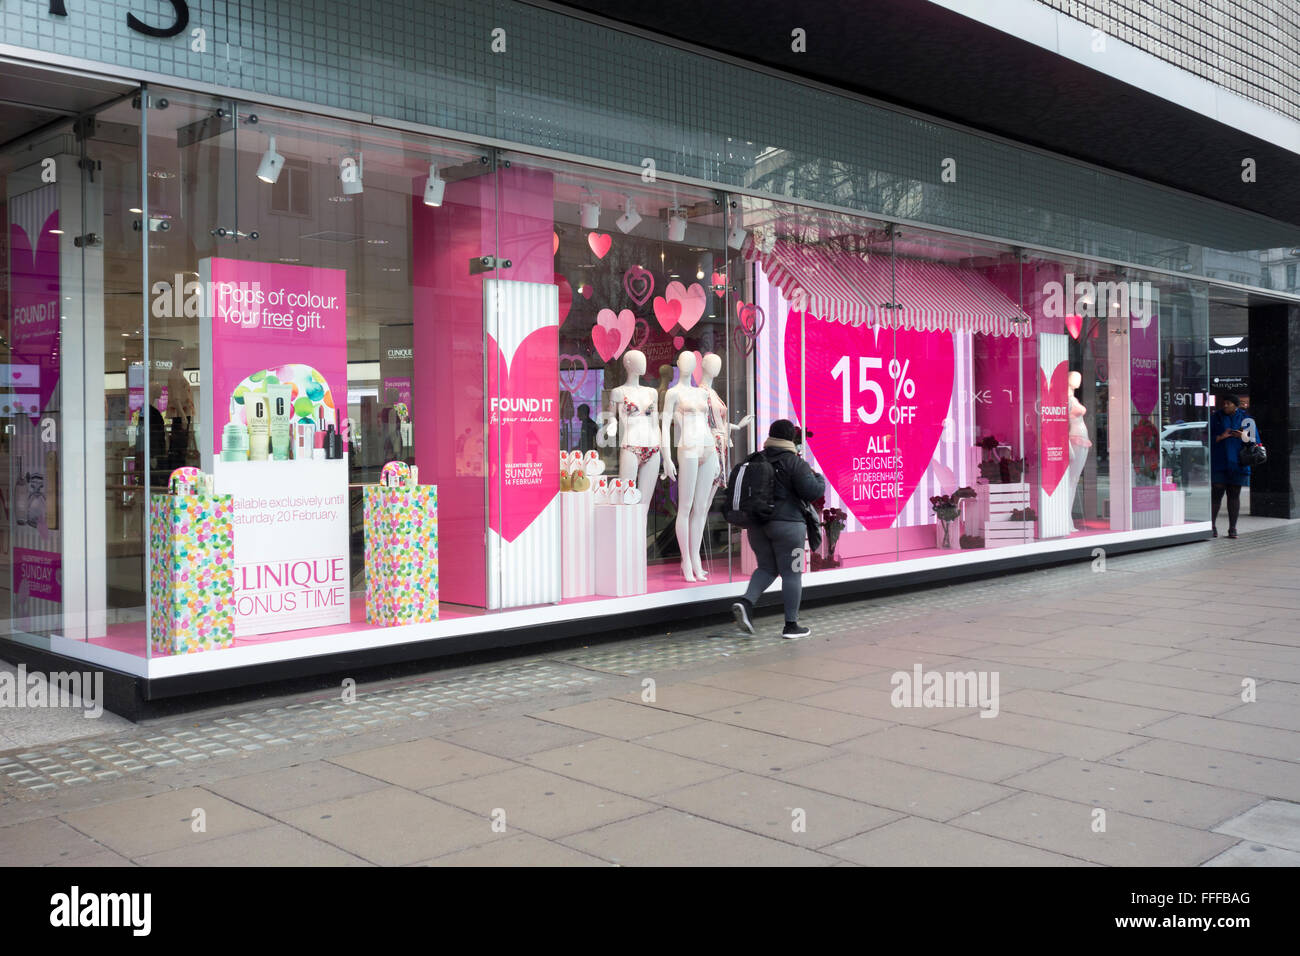 London, UK. 11th February 2016: Debenhams department store install and launch valentine's day window display - Stock Image